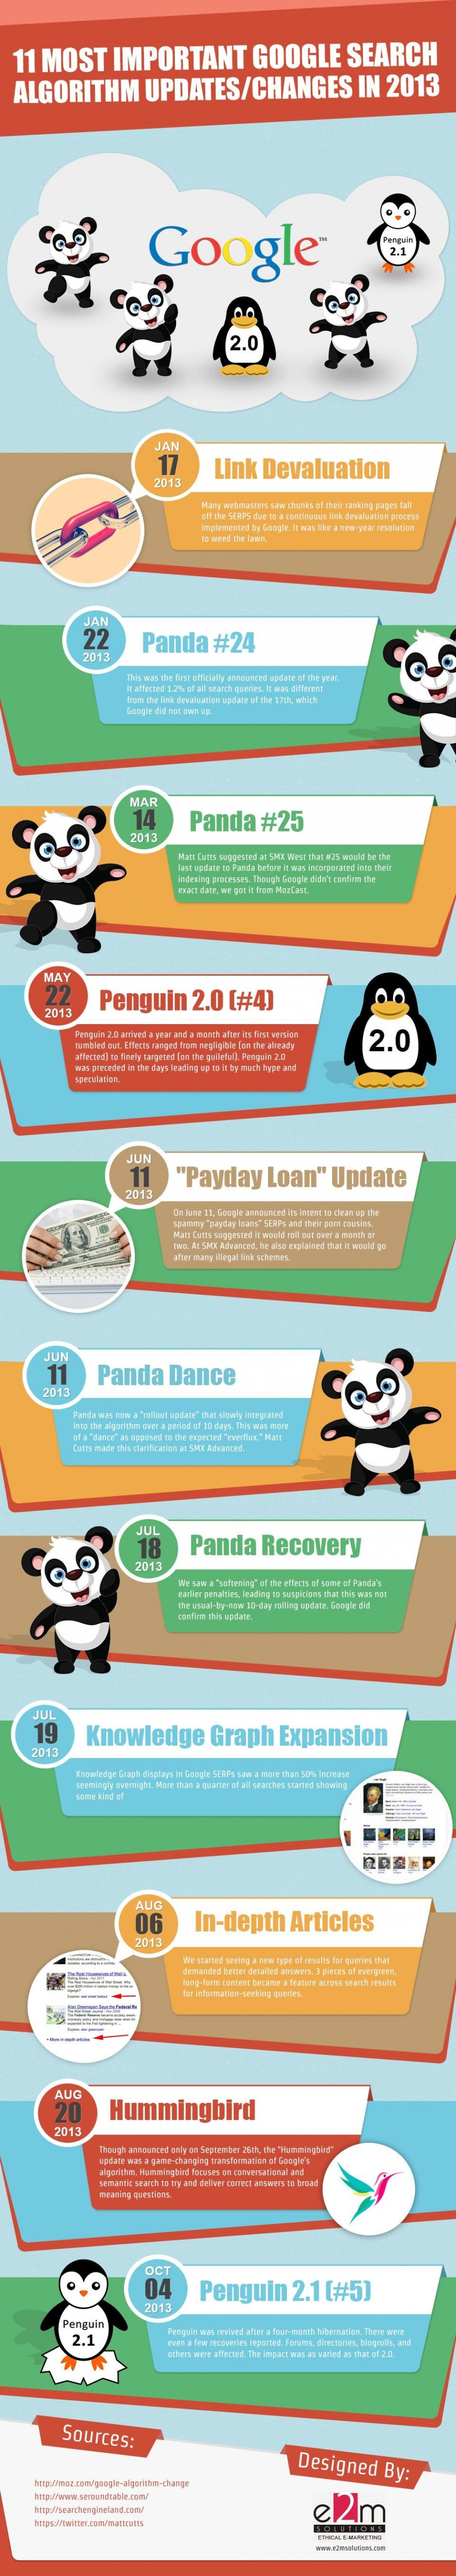 "SEO: Die wichtigsten Google-Updates in 2013. (Bild: <a href=""http://www.e2msolutions.com/blog/google-search-algorithm-changes-in-2013-infographic/"">e2msolutions.com</a>)"